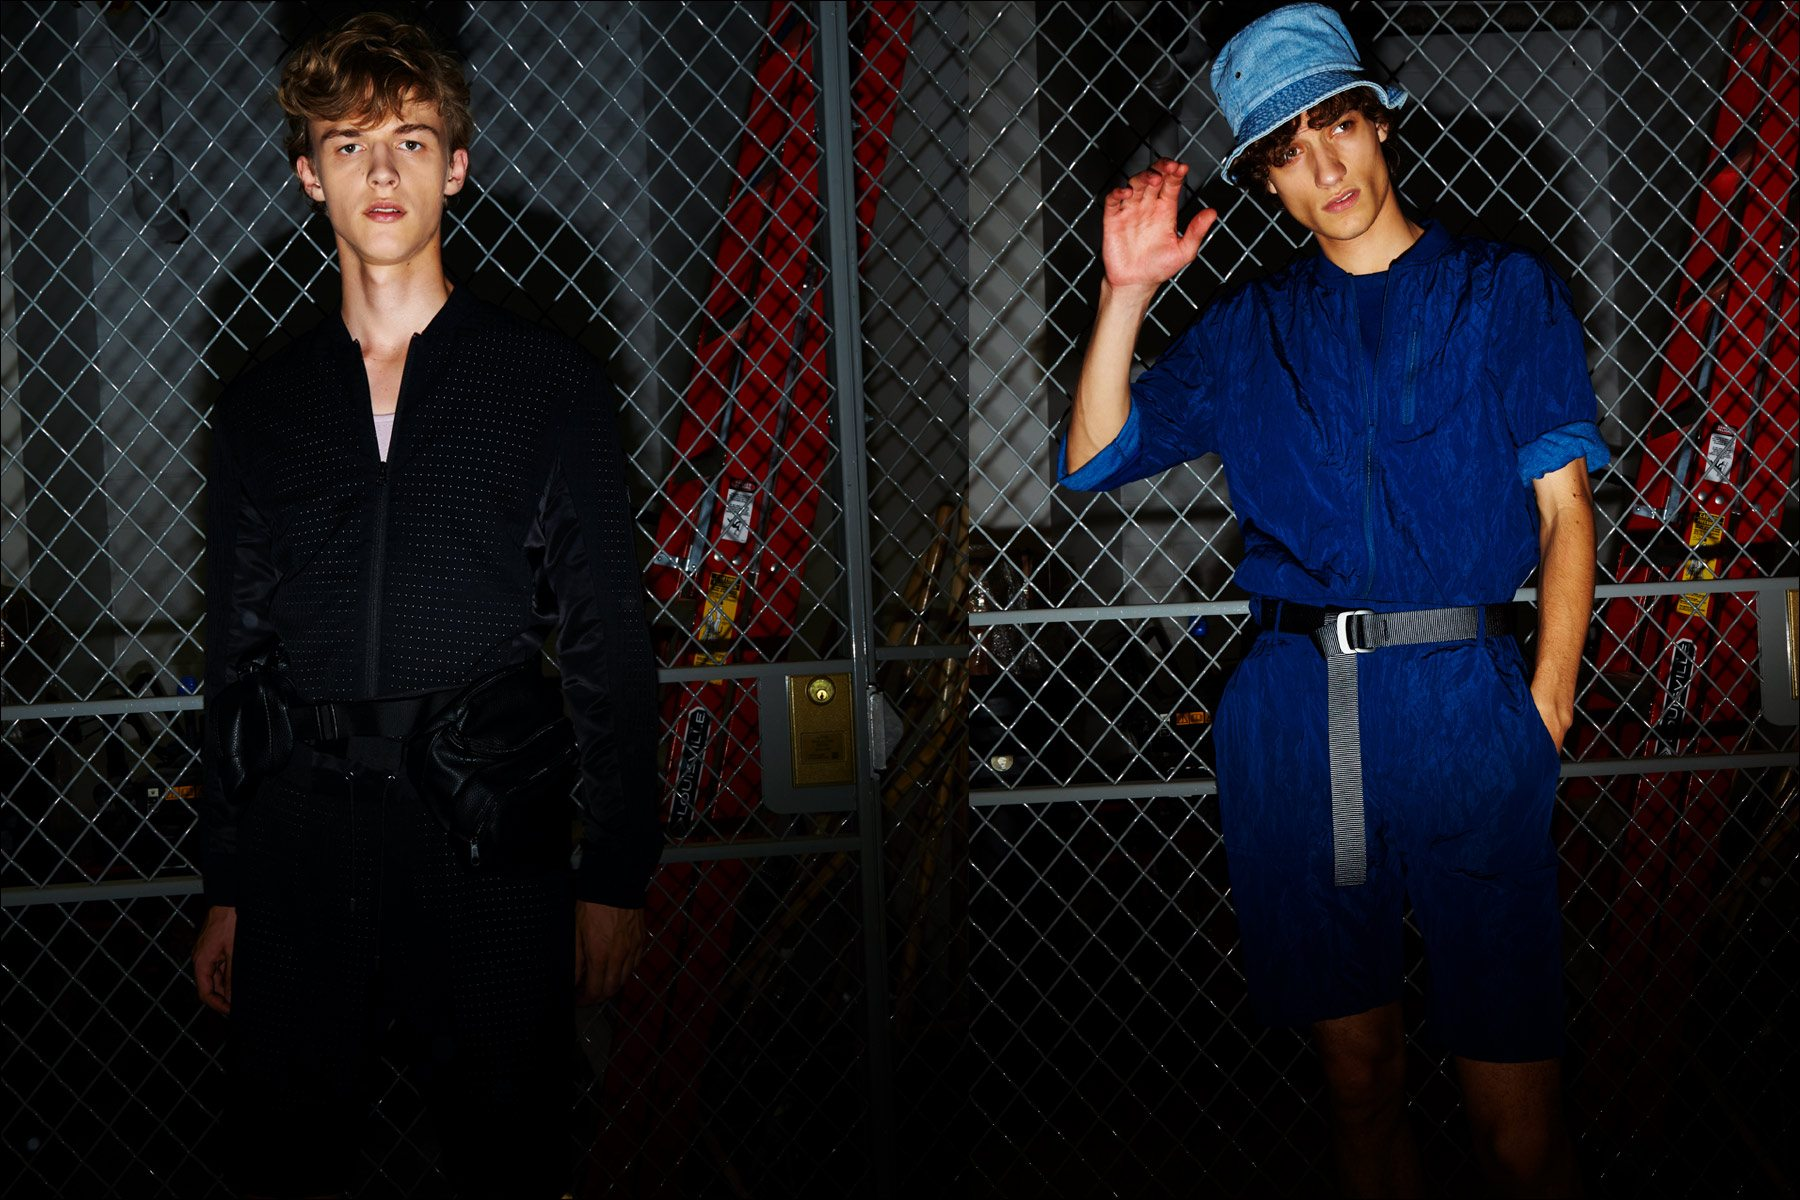 Male models photographed in front of a chain link fence at the Matiere S/S18 menswear show. Photography by Alexander Thompson for Ponyboy magazine NY.